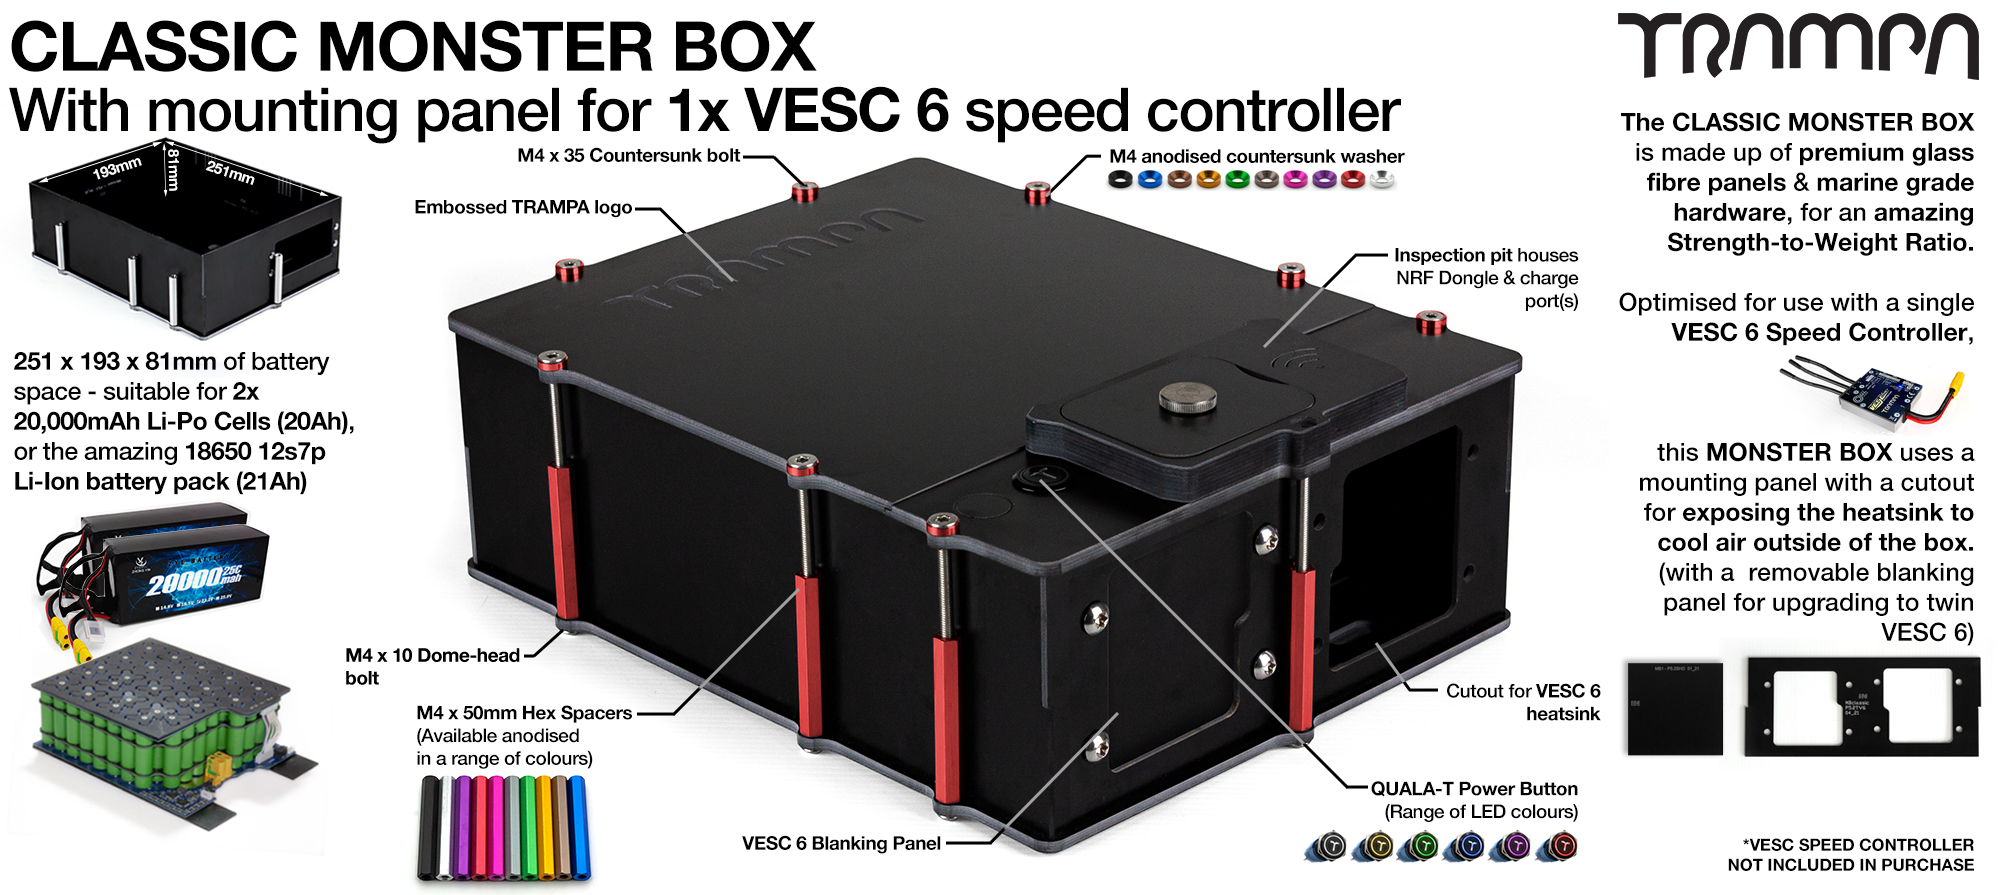 MONSTER Box MkIV fits 84x 18650 cells to give 12s7p 21A or 2x22000 mAh Lipos & has Panels to fit 1x VESC 6 Internally. Made specifically to work in conjunction with TRAMPA's 1WD Electric MTB Decks, also works on any thing it can be adapted too